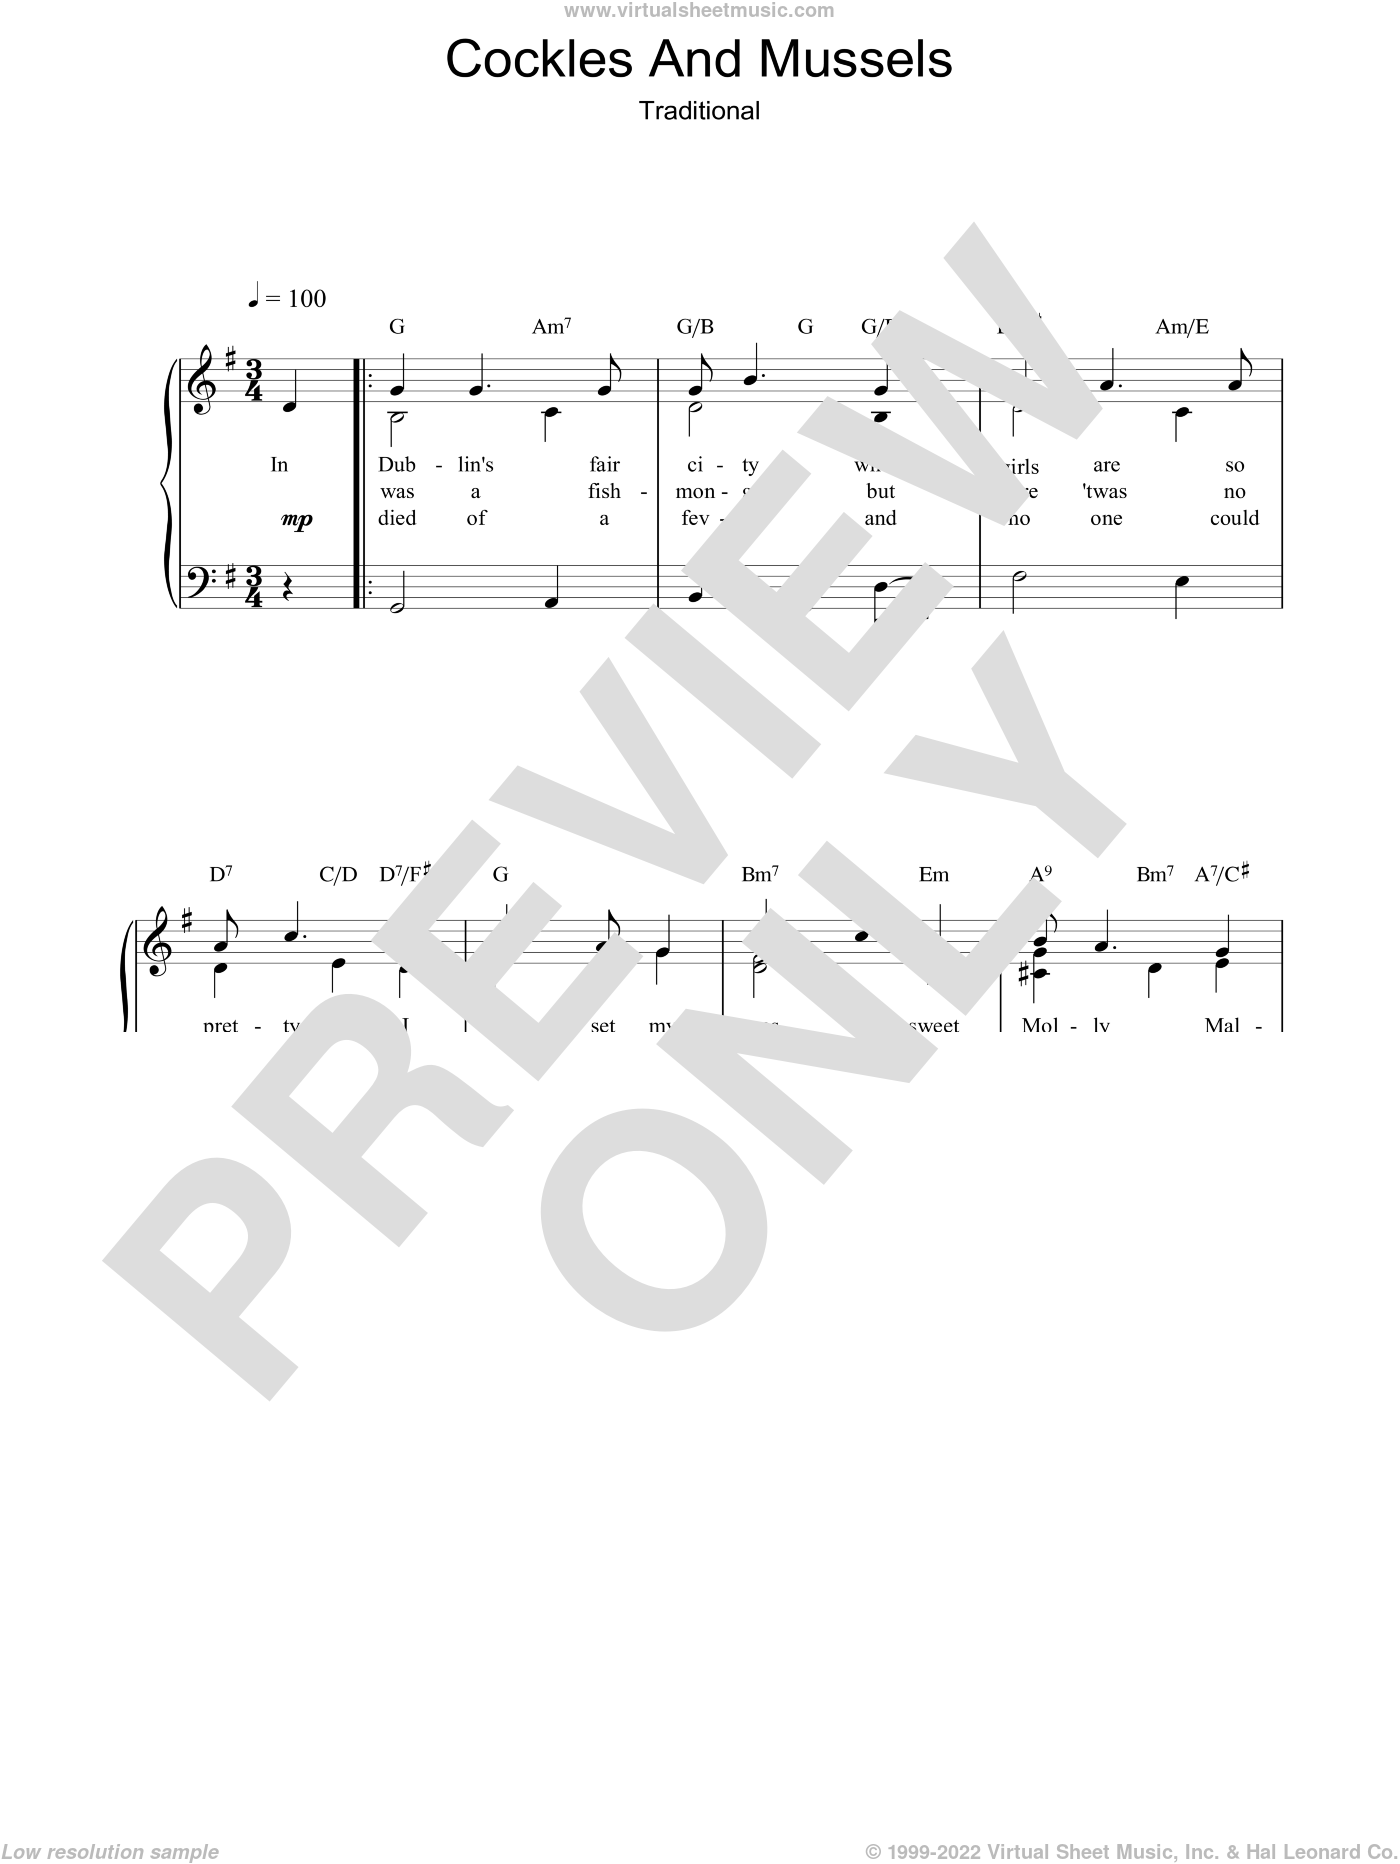 Cockles And Mussels sheet music for voice, piano or guitar